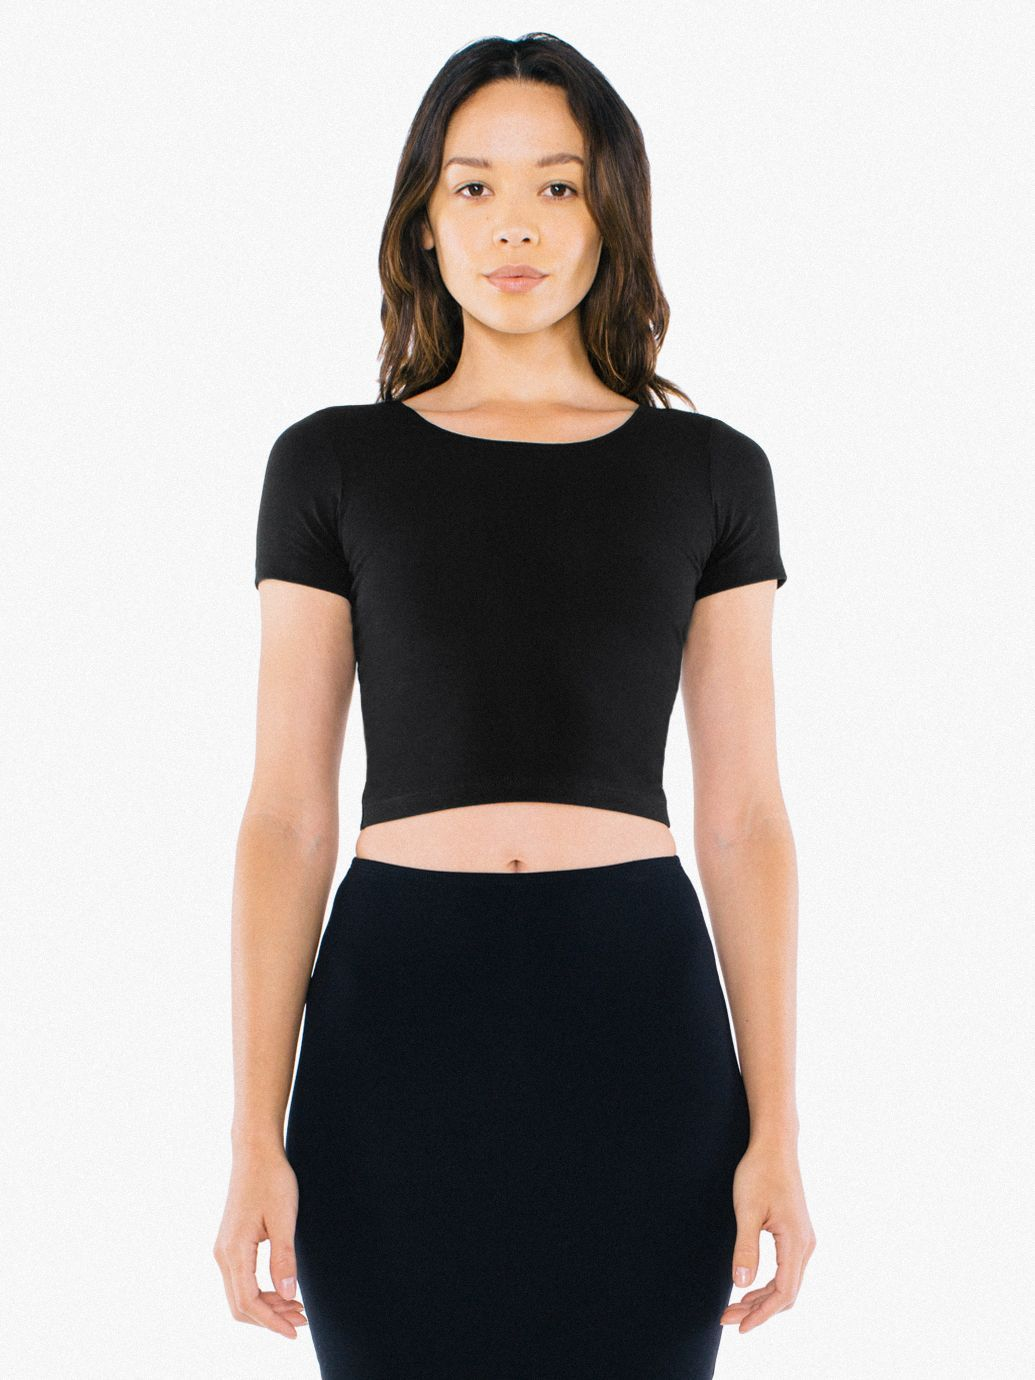 012671e7a07 The Cotton Spandex Jersey Crop T-Shirt is an attention-grabbing fitted  scoop neck t-shirt that hits just above the waist. <BR><BR><SPAN><!--|--><!